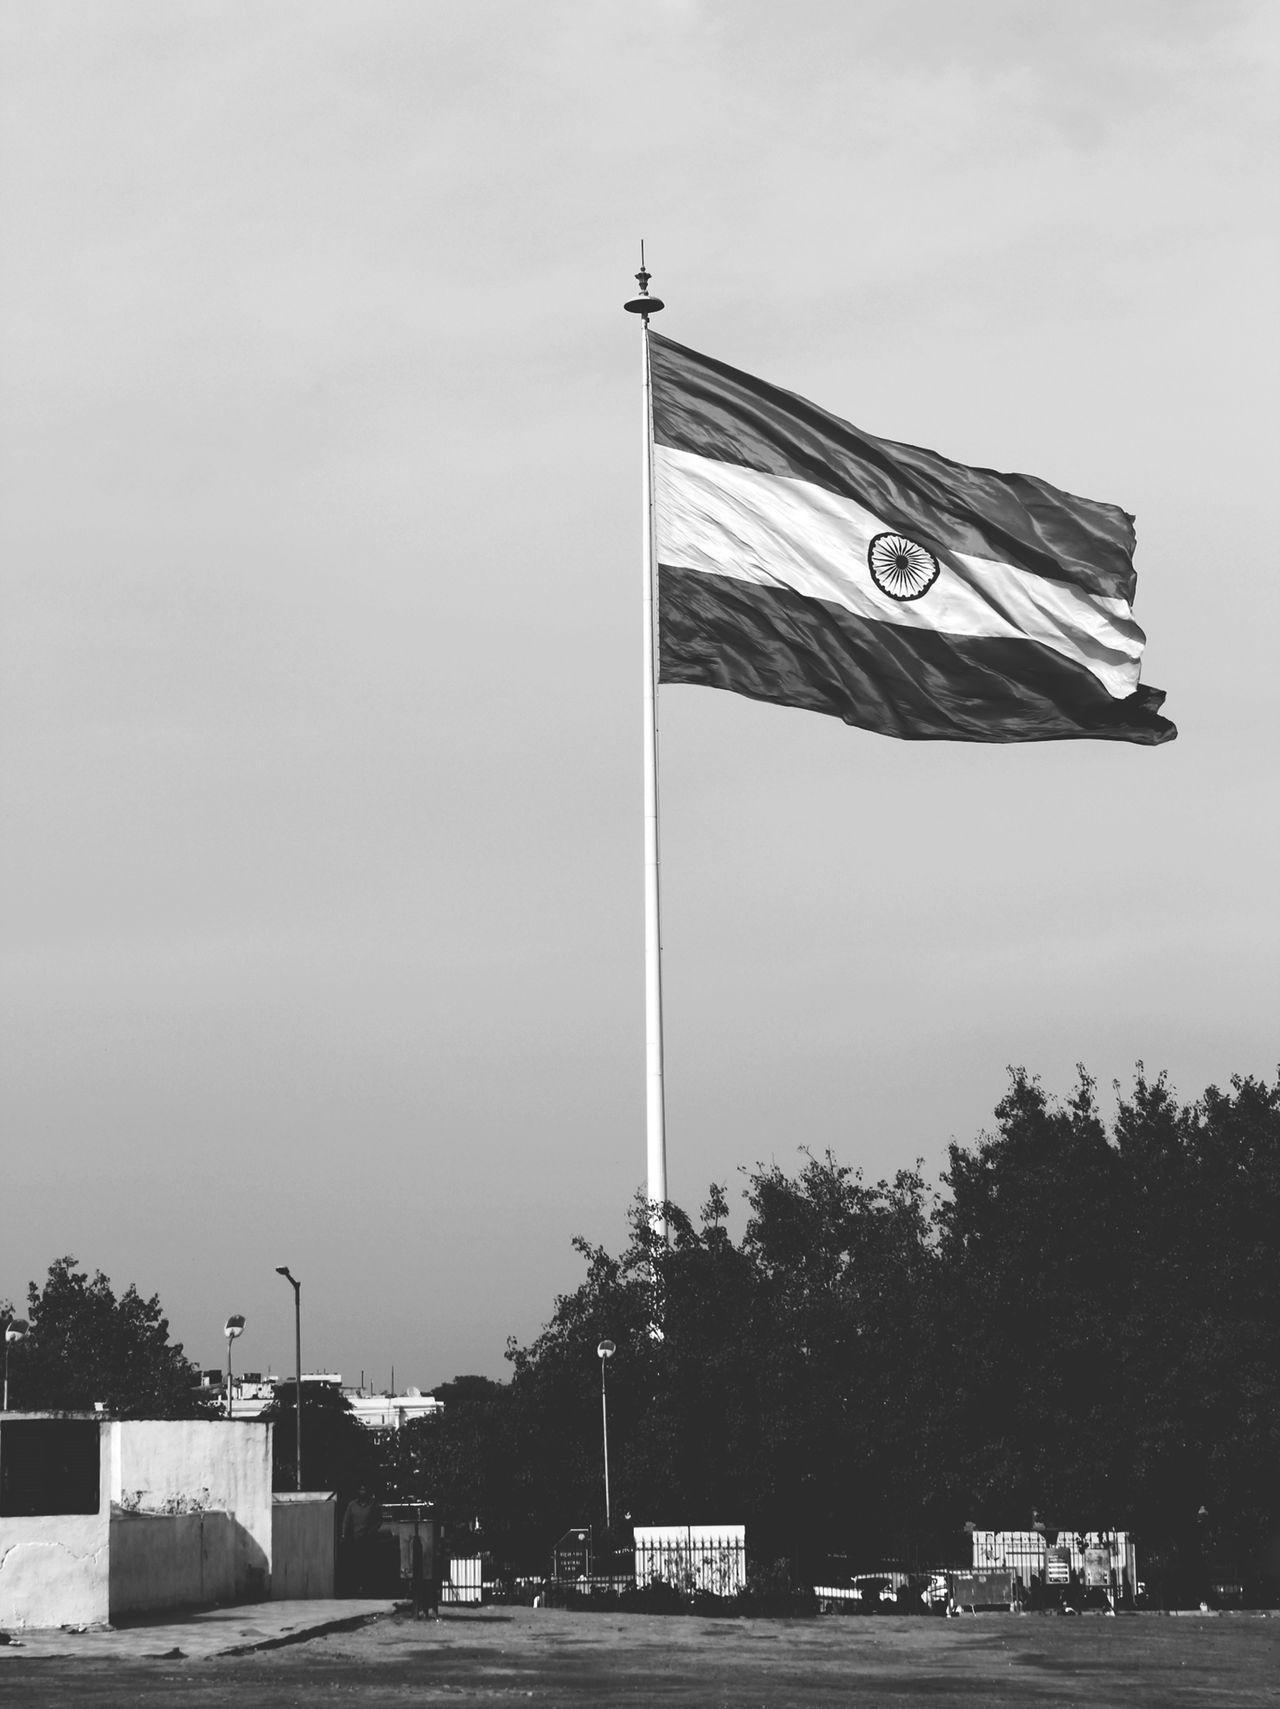 Indian Flag, fluttering in the wind, in the heart of India's capital city, New Delhi. Black & White Blackandwhite ConnaughtPlace Darktones Delhi Flag India Monochrome New Delhi Patriotism